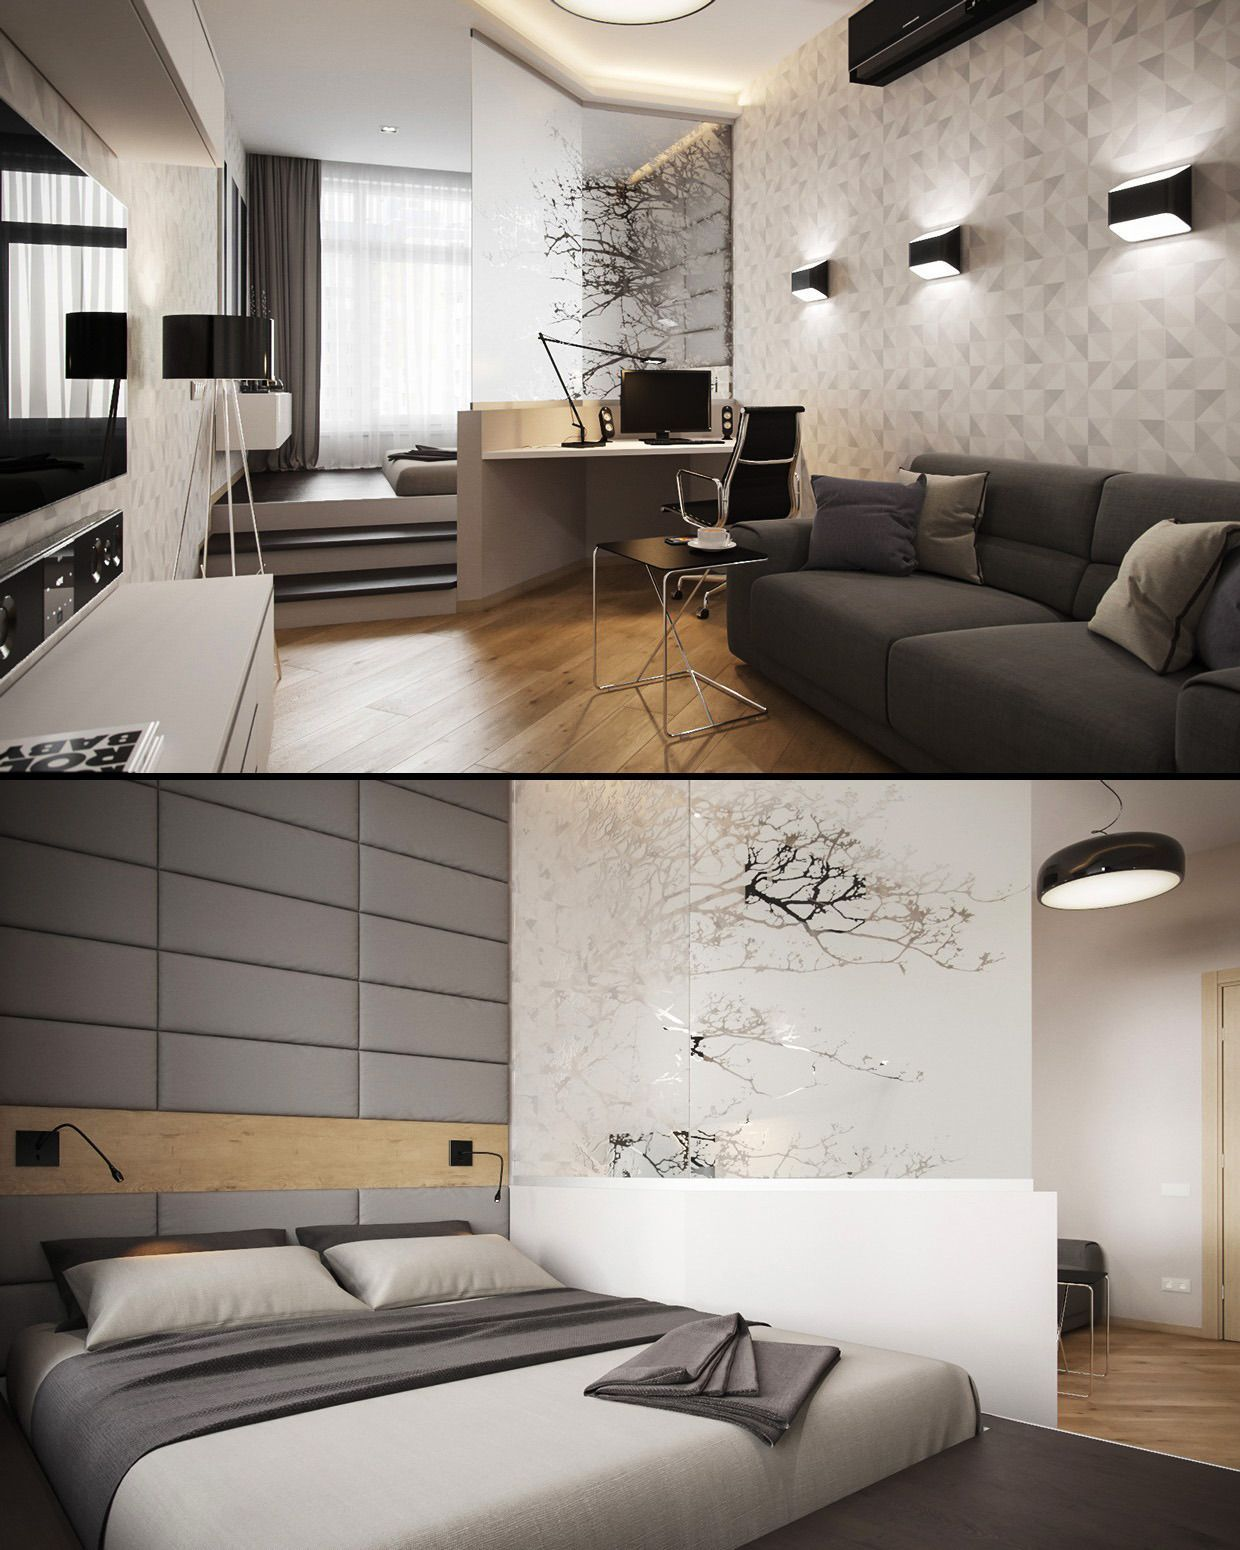 Small, Smart Studios with Slick, Simple Designs   Small ...